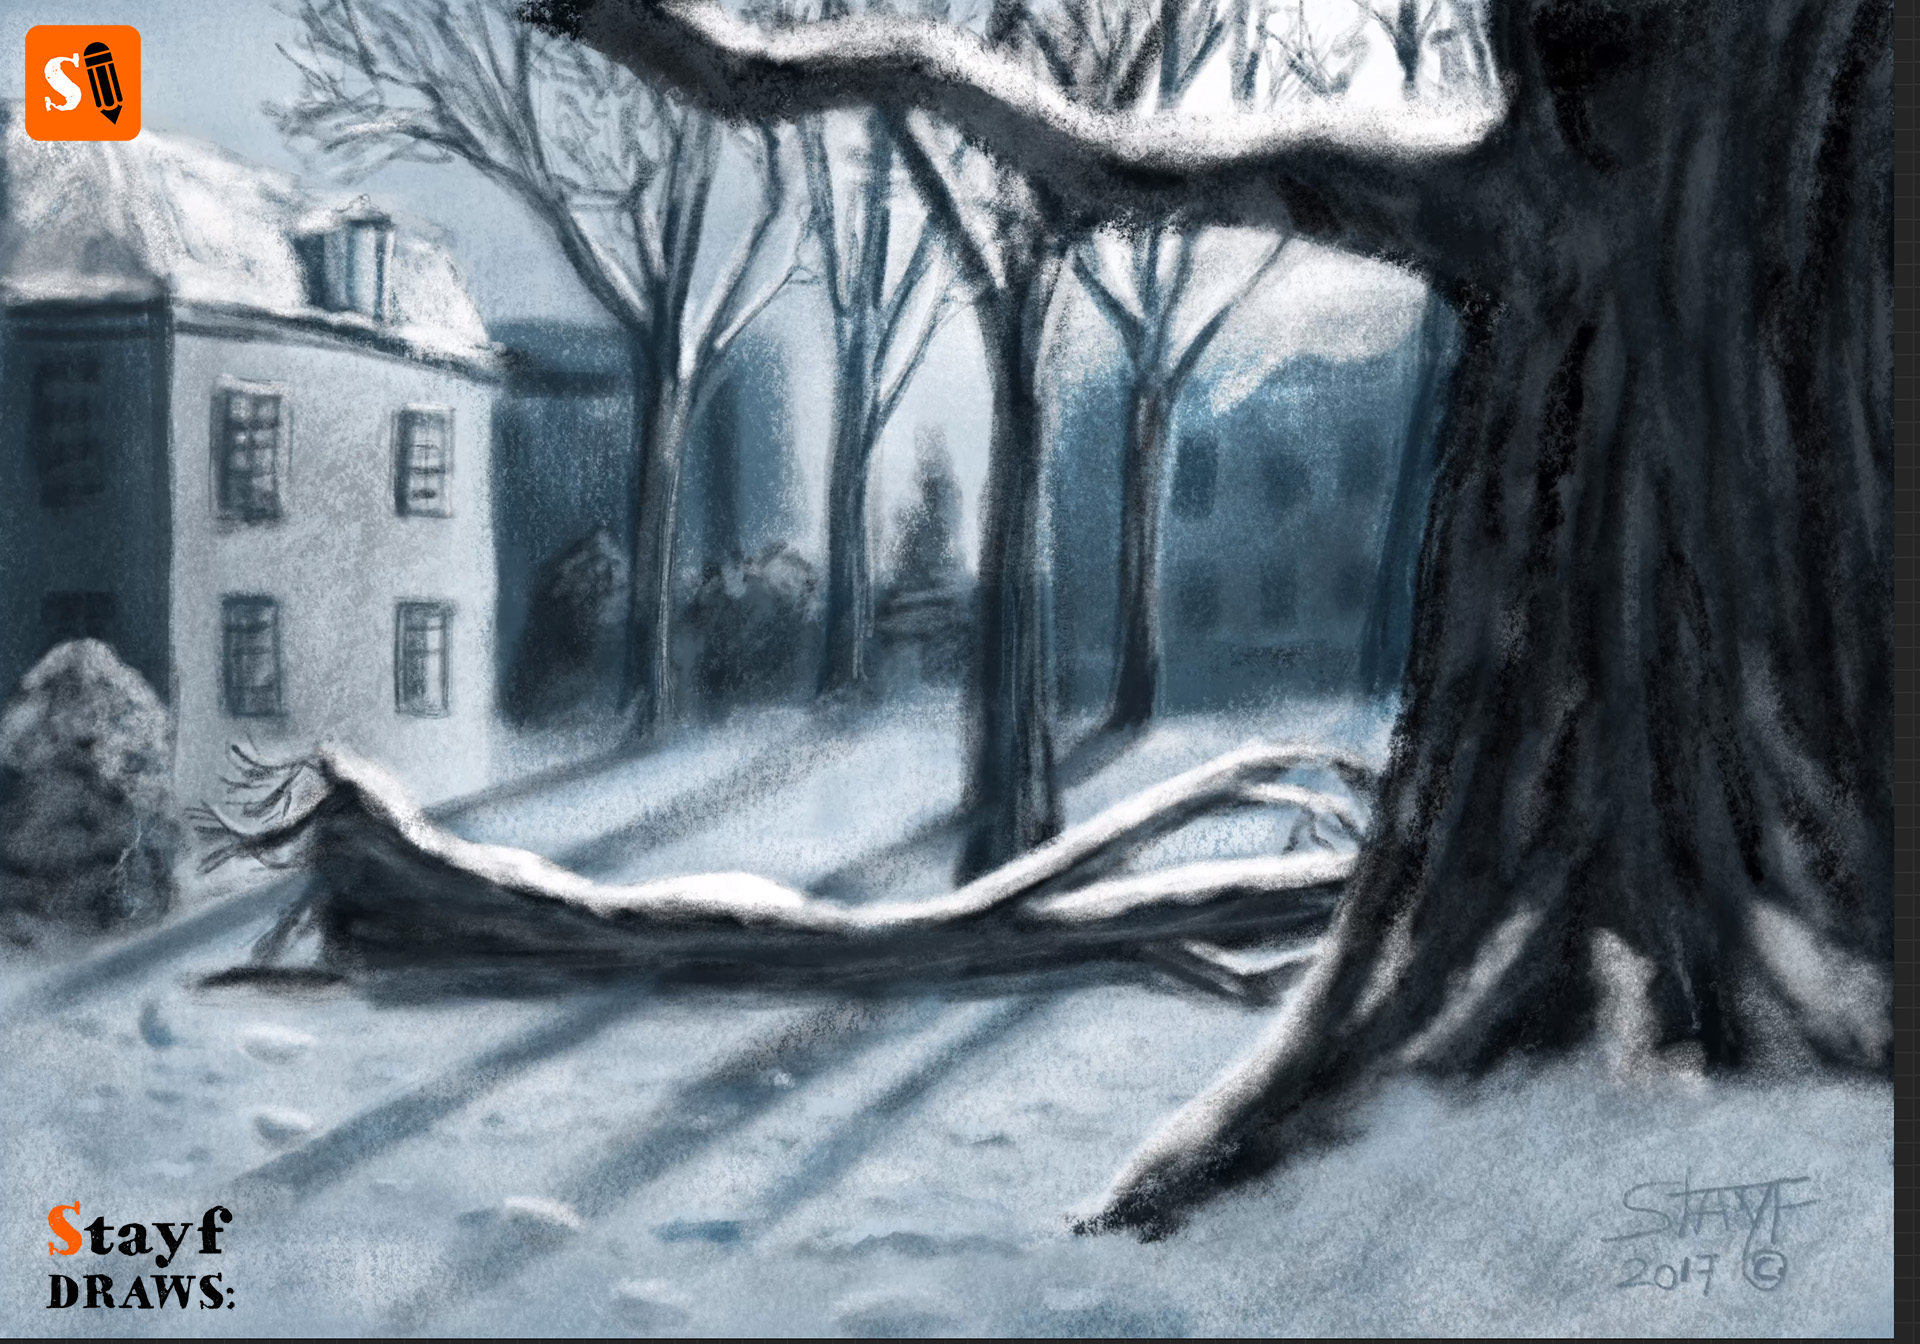 StayfDraws-Procreate-Pastels-Winterlandscape4